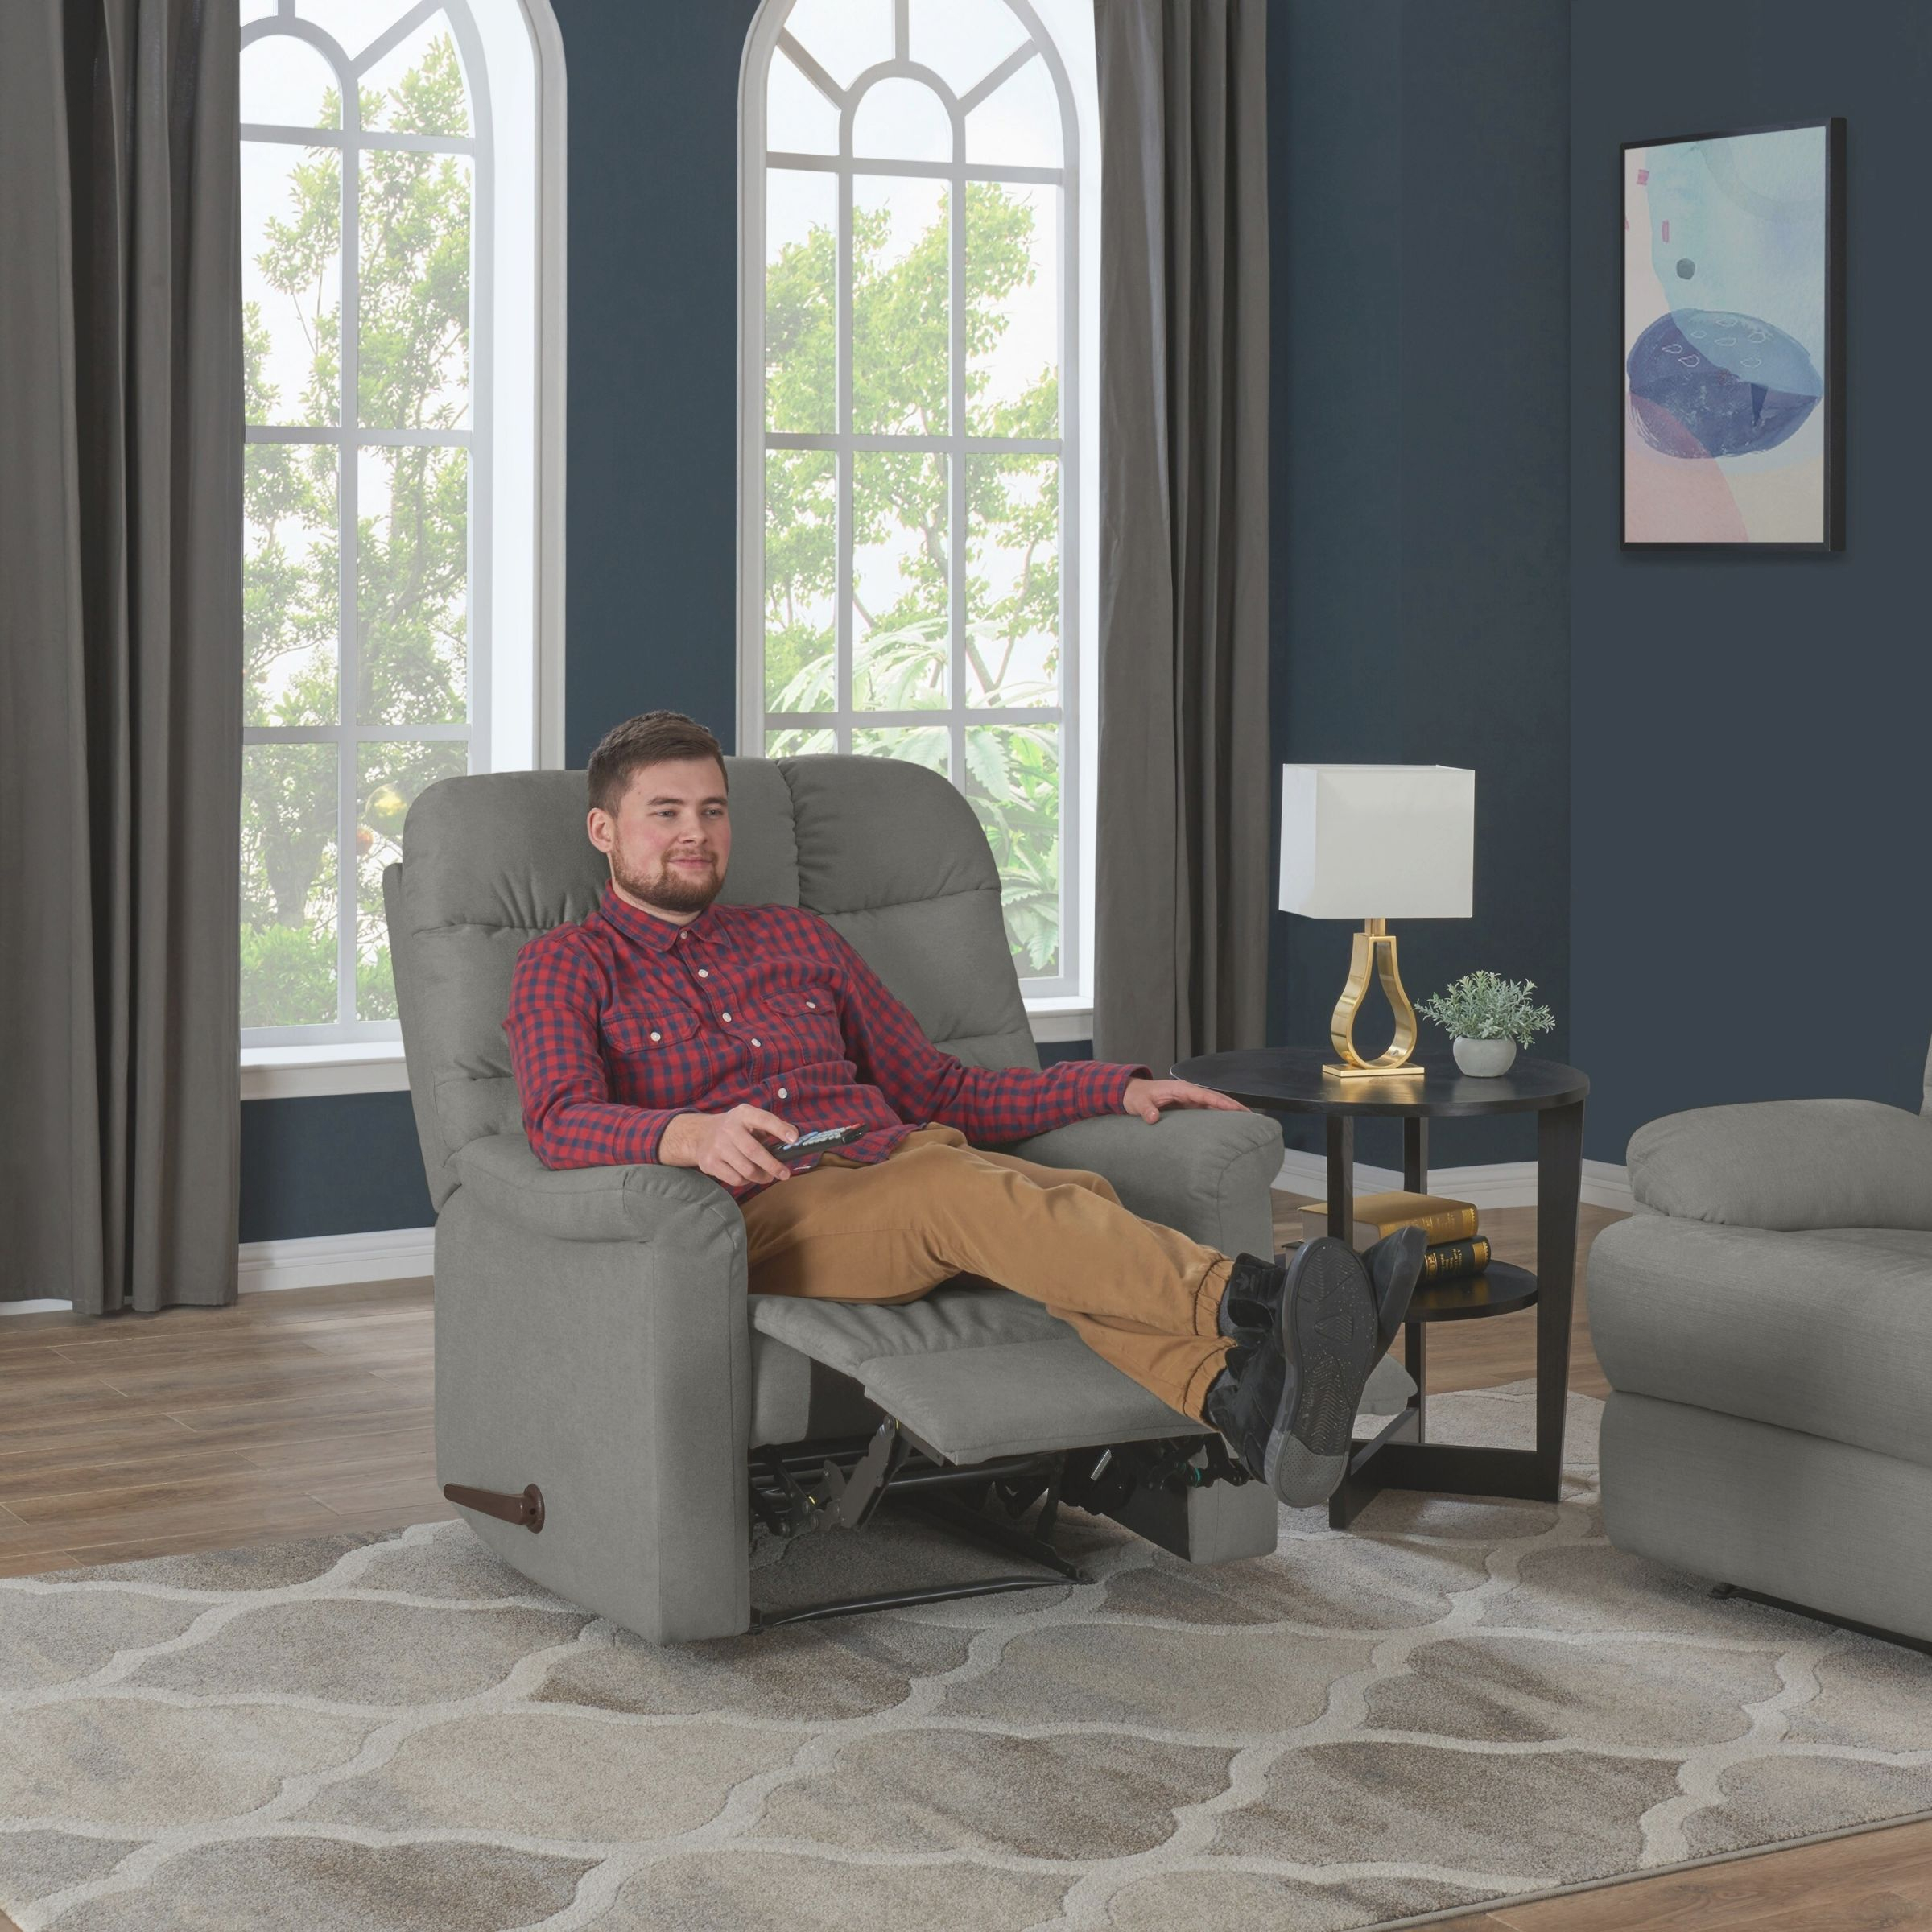 Copper Grove Deinze Blue/Grey/Tan Velvet Tufted Back Extra Large Wall Hugger Reclining Chair throughout Blue And Tan Living Room